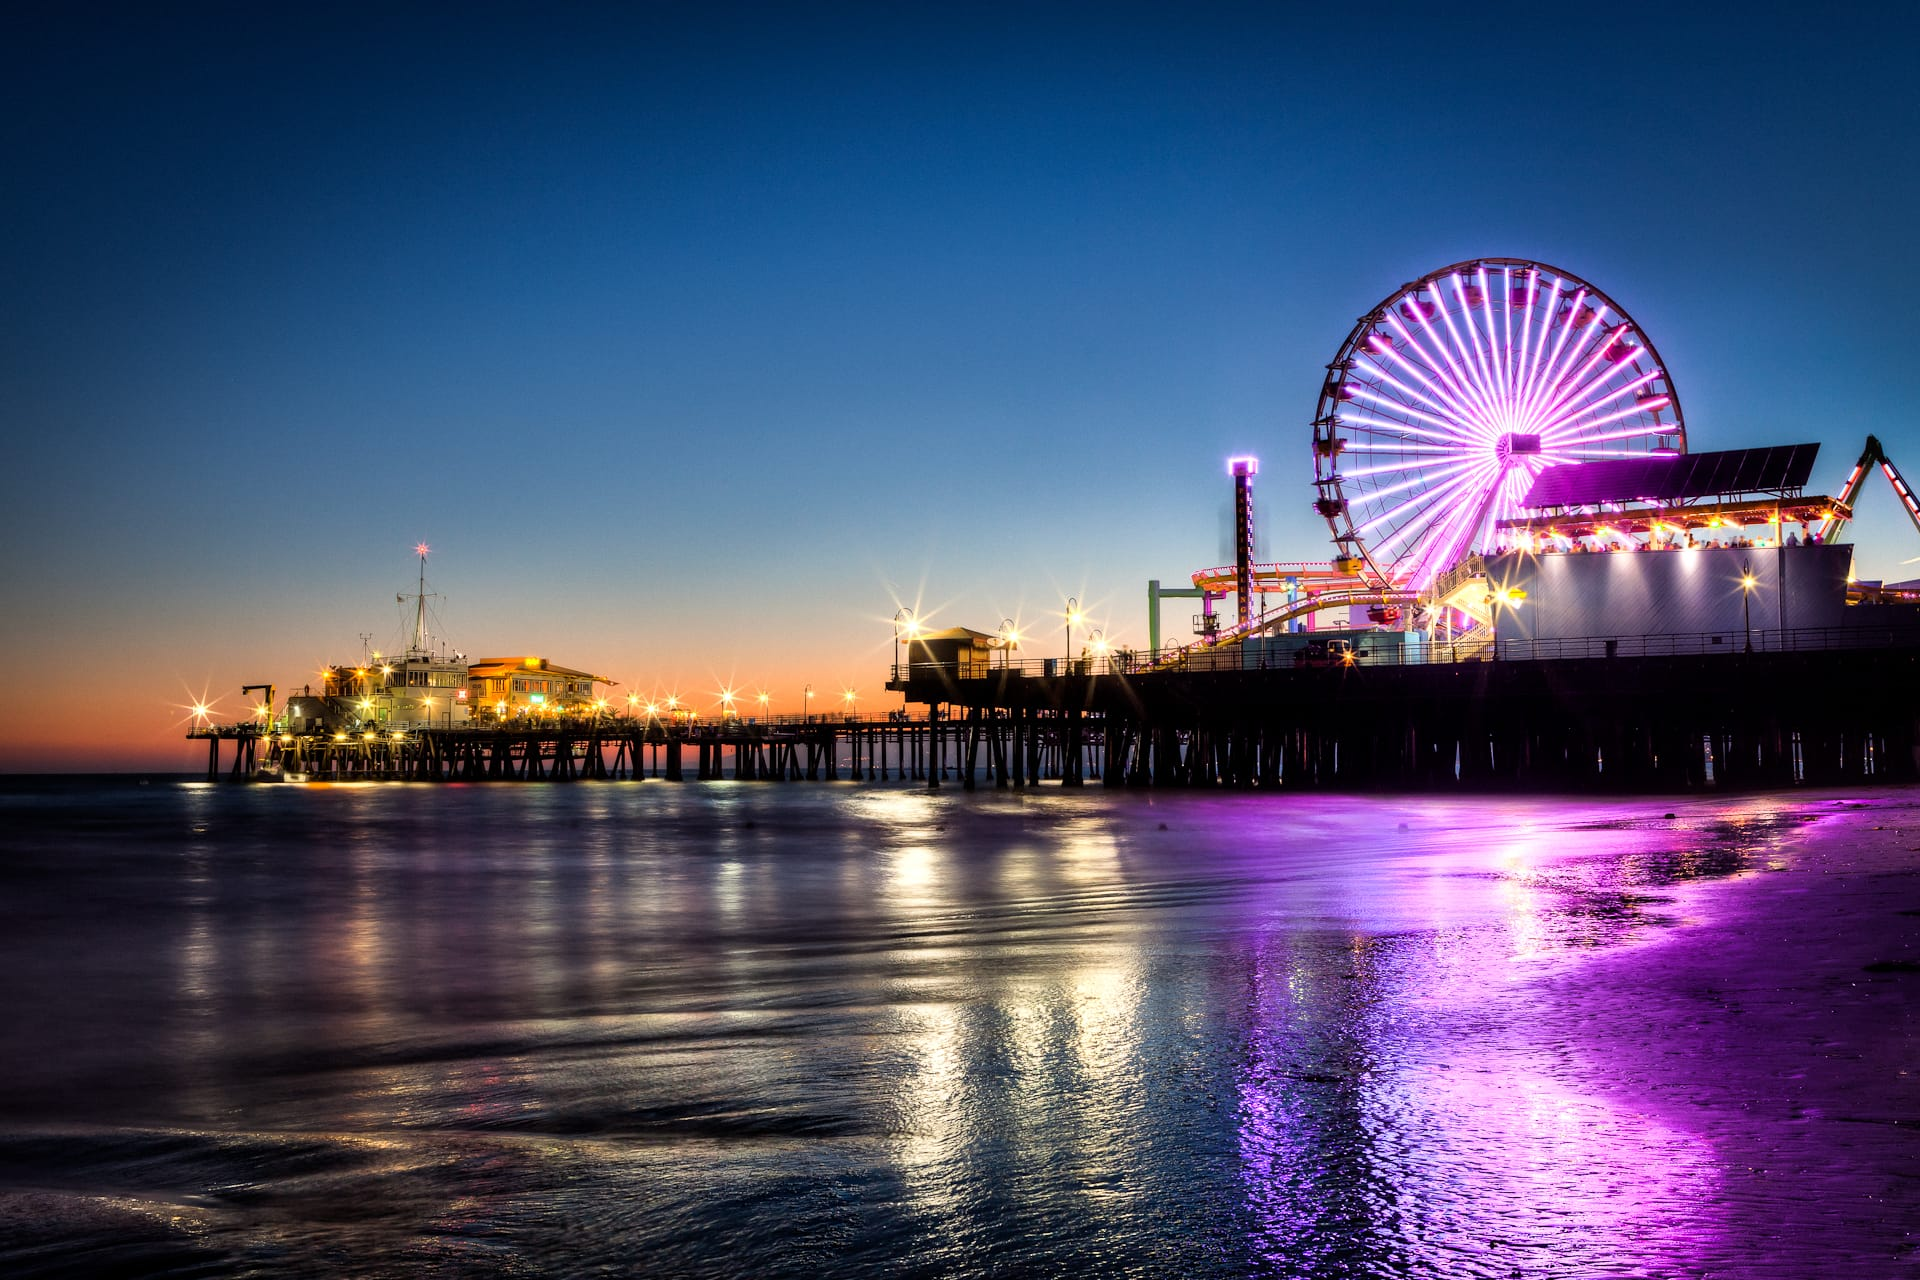 Santa Monica Pier Ferris Wheel Amusement Park HDR